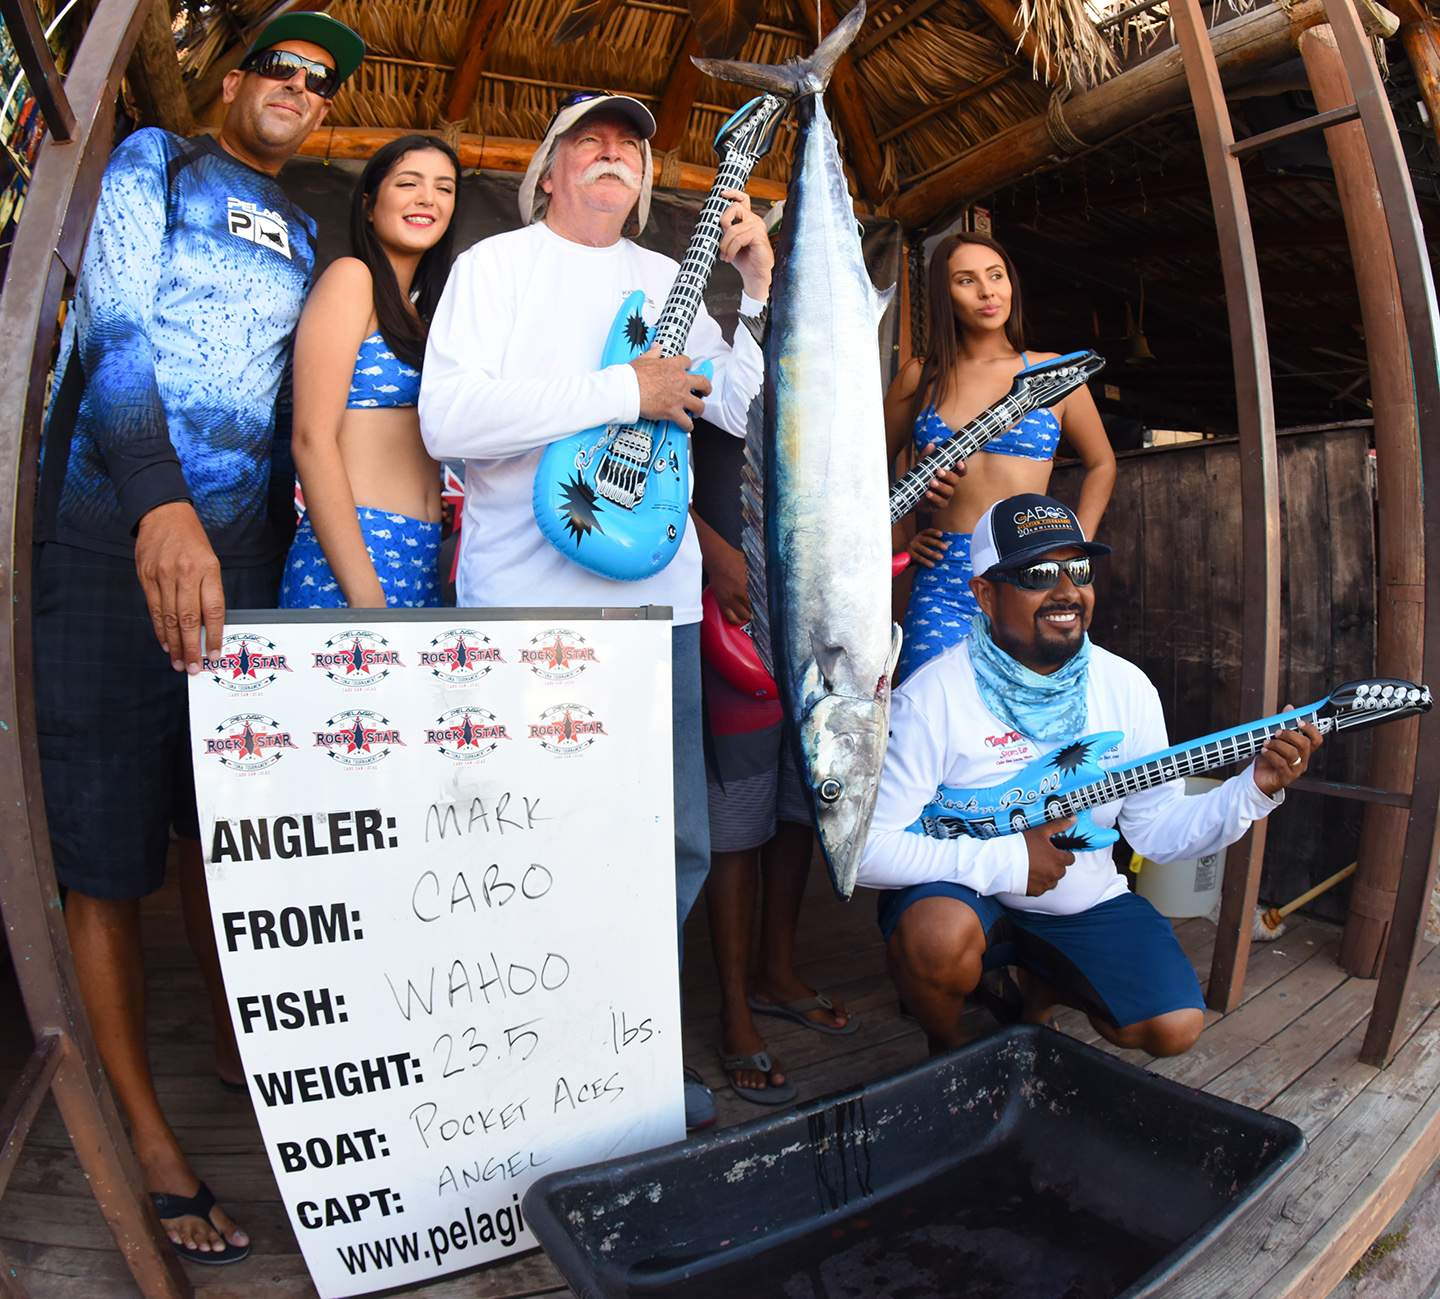 Pocket Aces Wahoo Weigh in Pelagic Rockstar Tuna Tourney